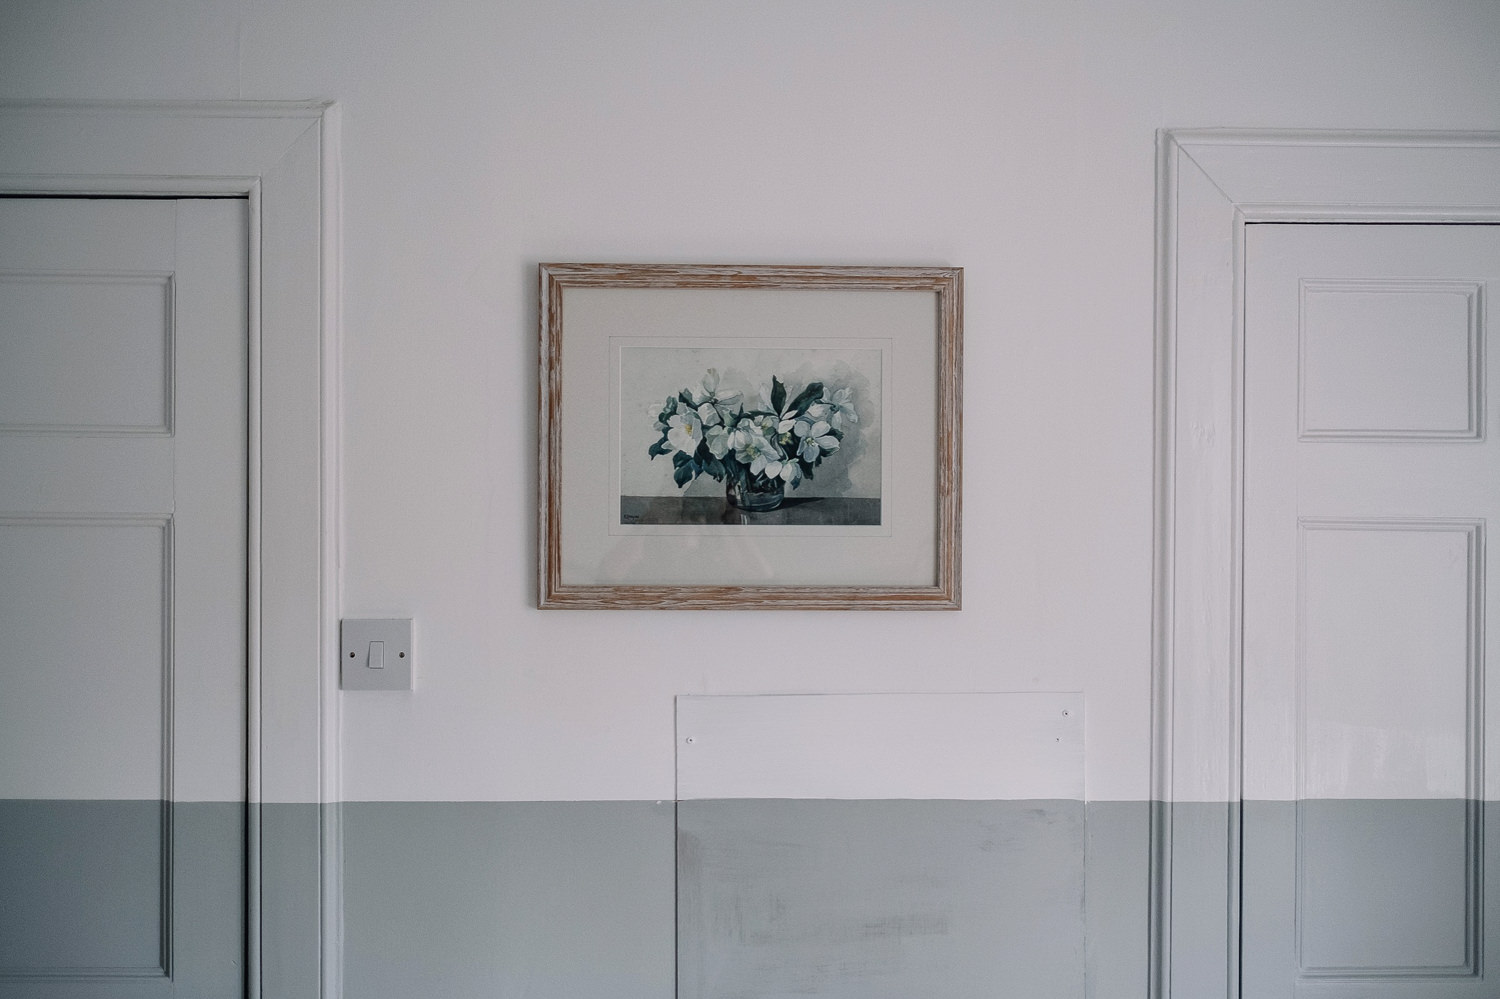 Picture hangs on the wall of one of the bedrooms in the Guardswell cottage